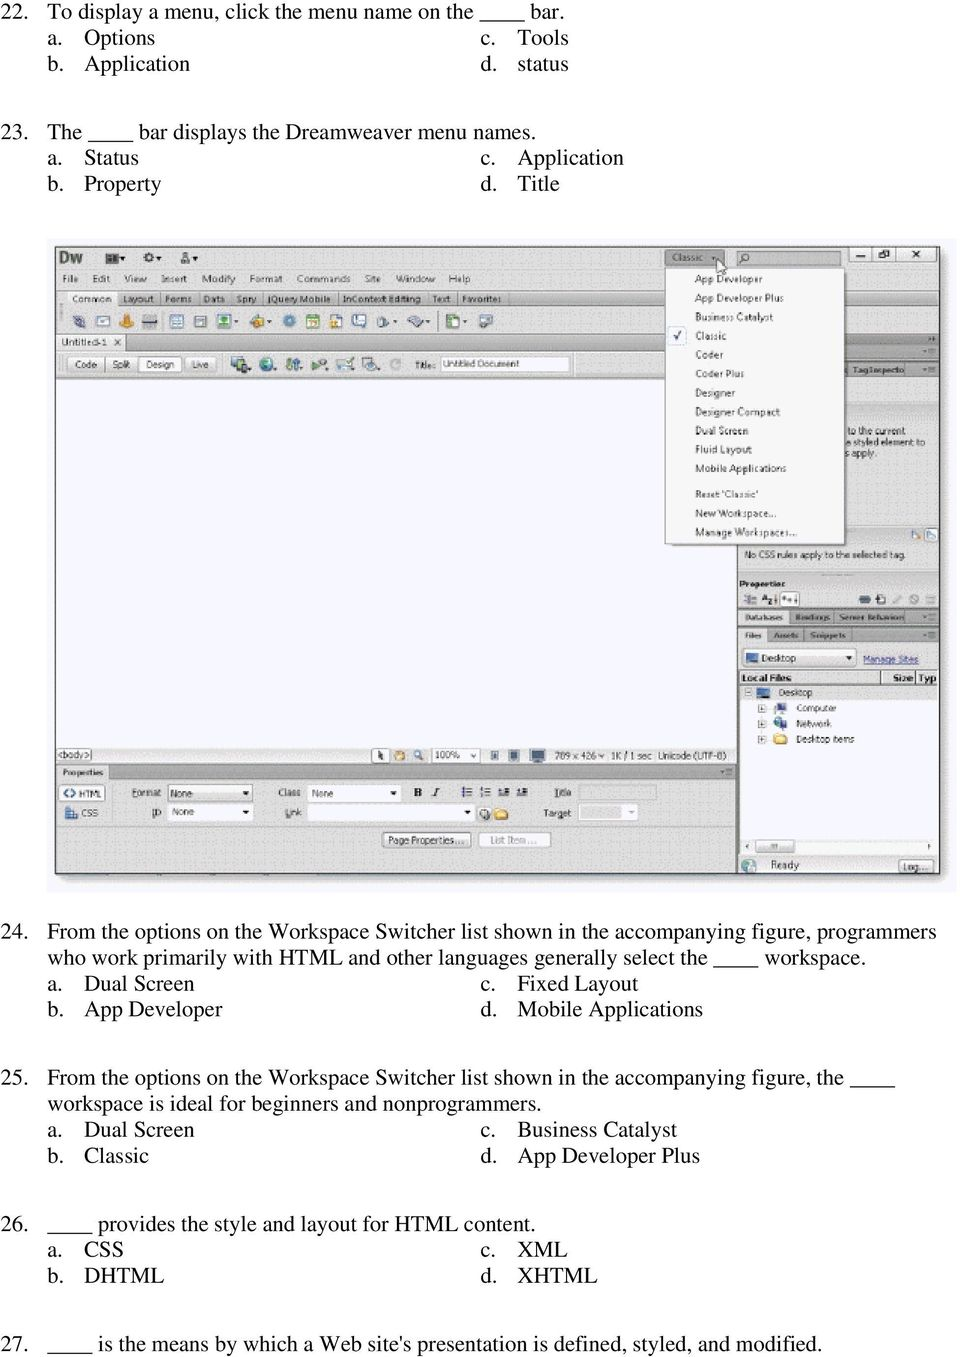 Fixed Layout b. App Developer d. Mobile Applications 25. From the options on the Workspace Switcher list shown in the accompanying figure, the workspace is ideal for beginners and nonprogrammers. a. Dual Screen c.